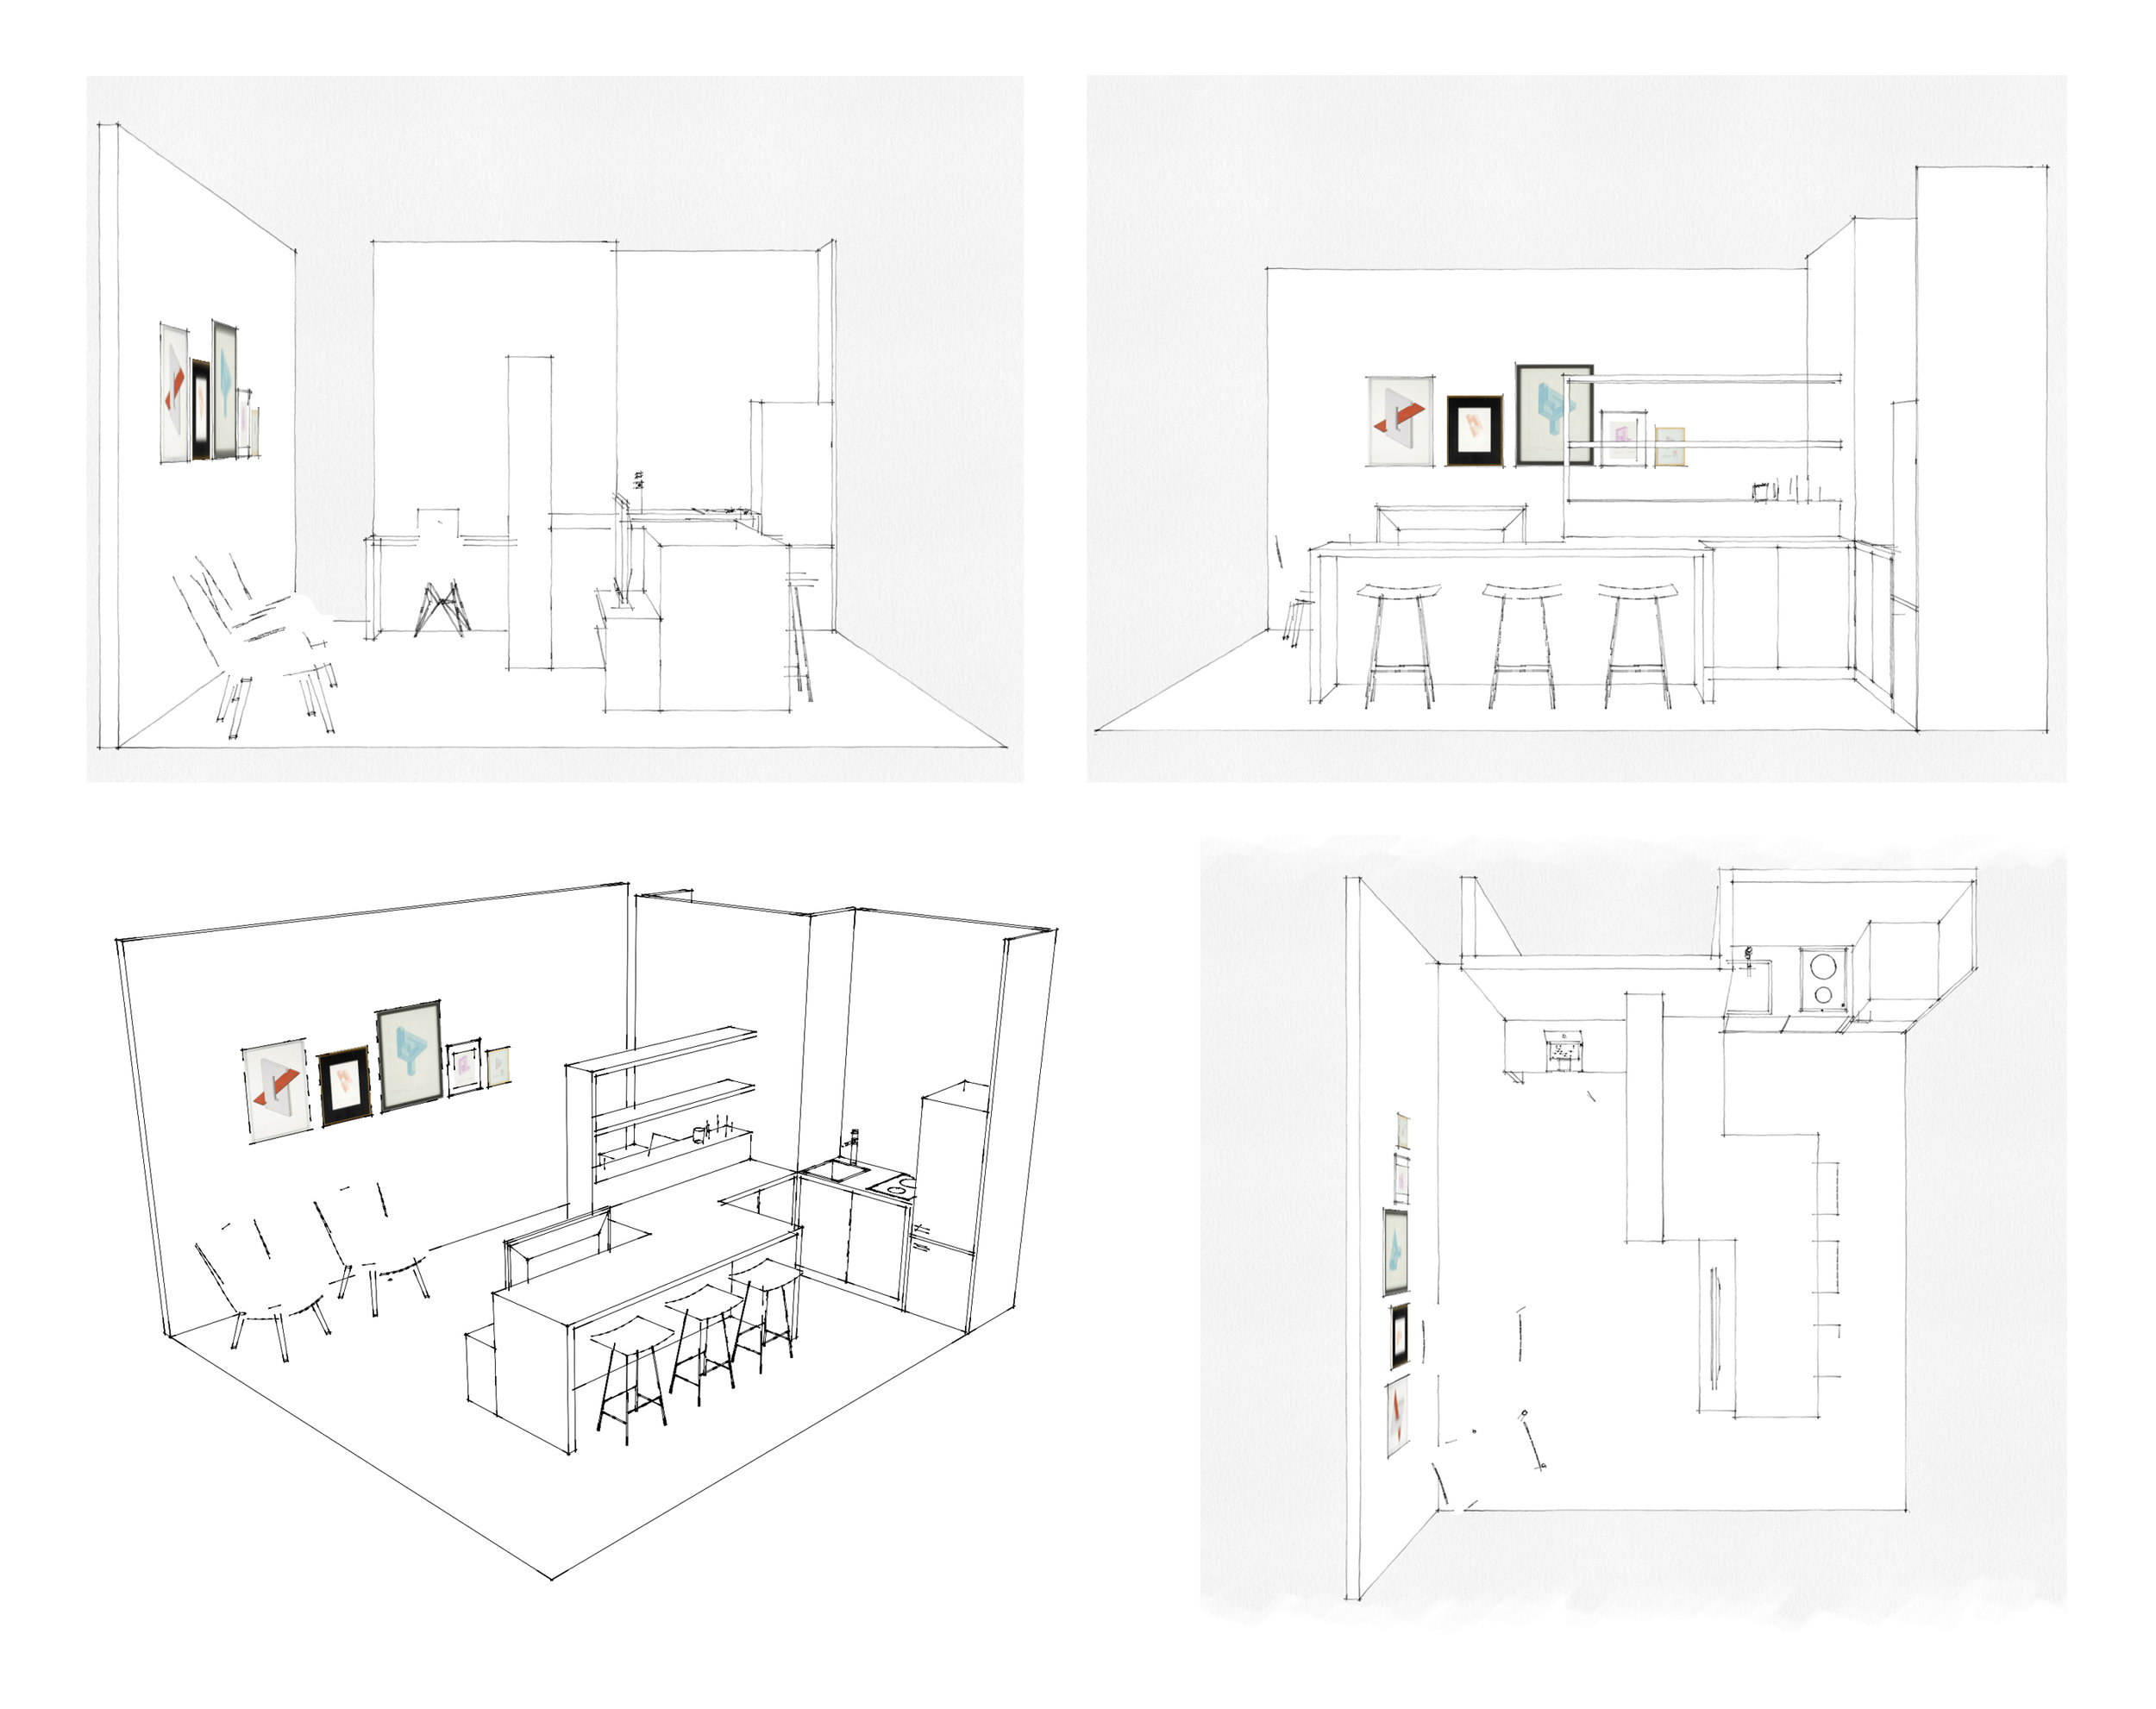 ilsa-melchiori-interior-design-sketches-artwork-micro-apartment.jpg